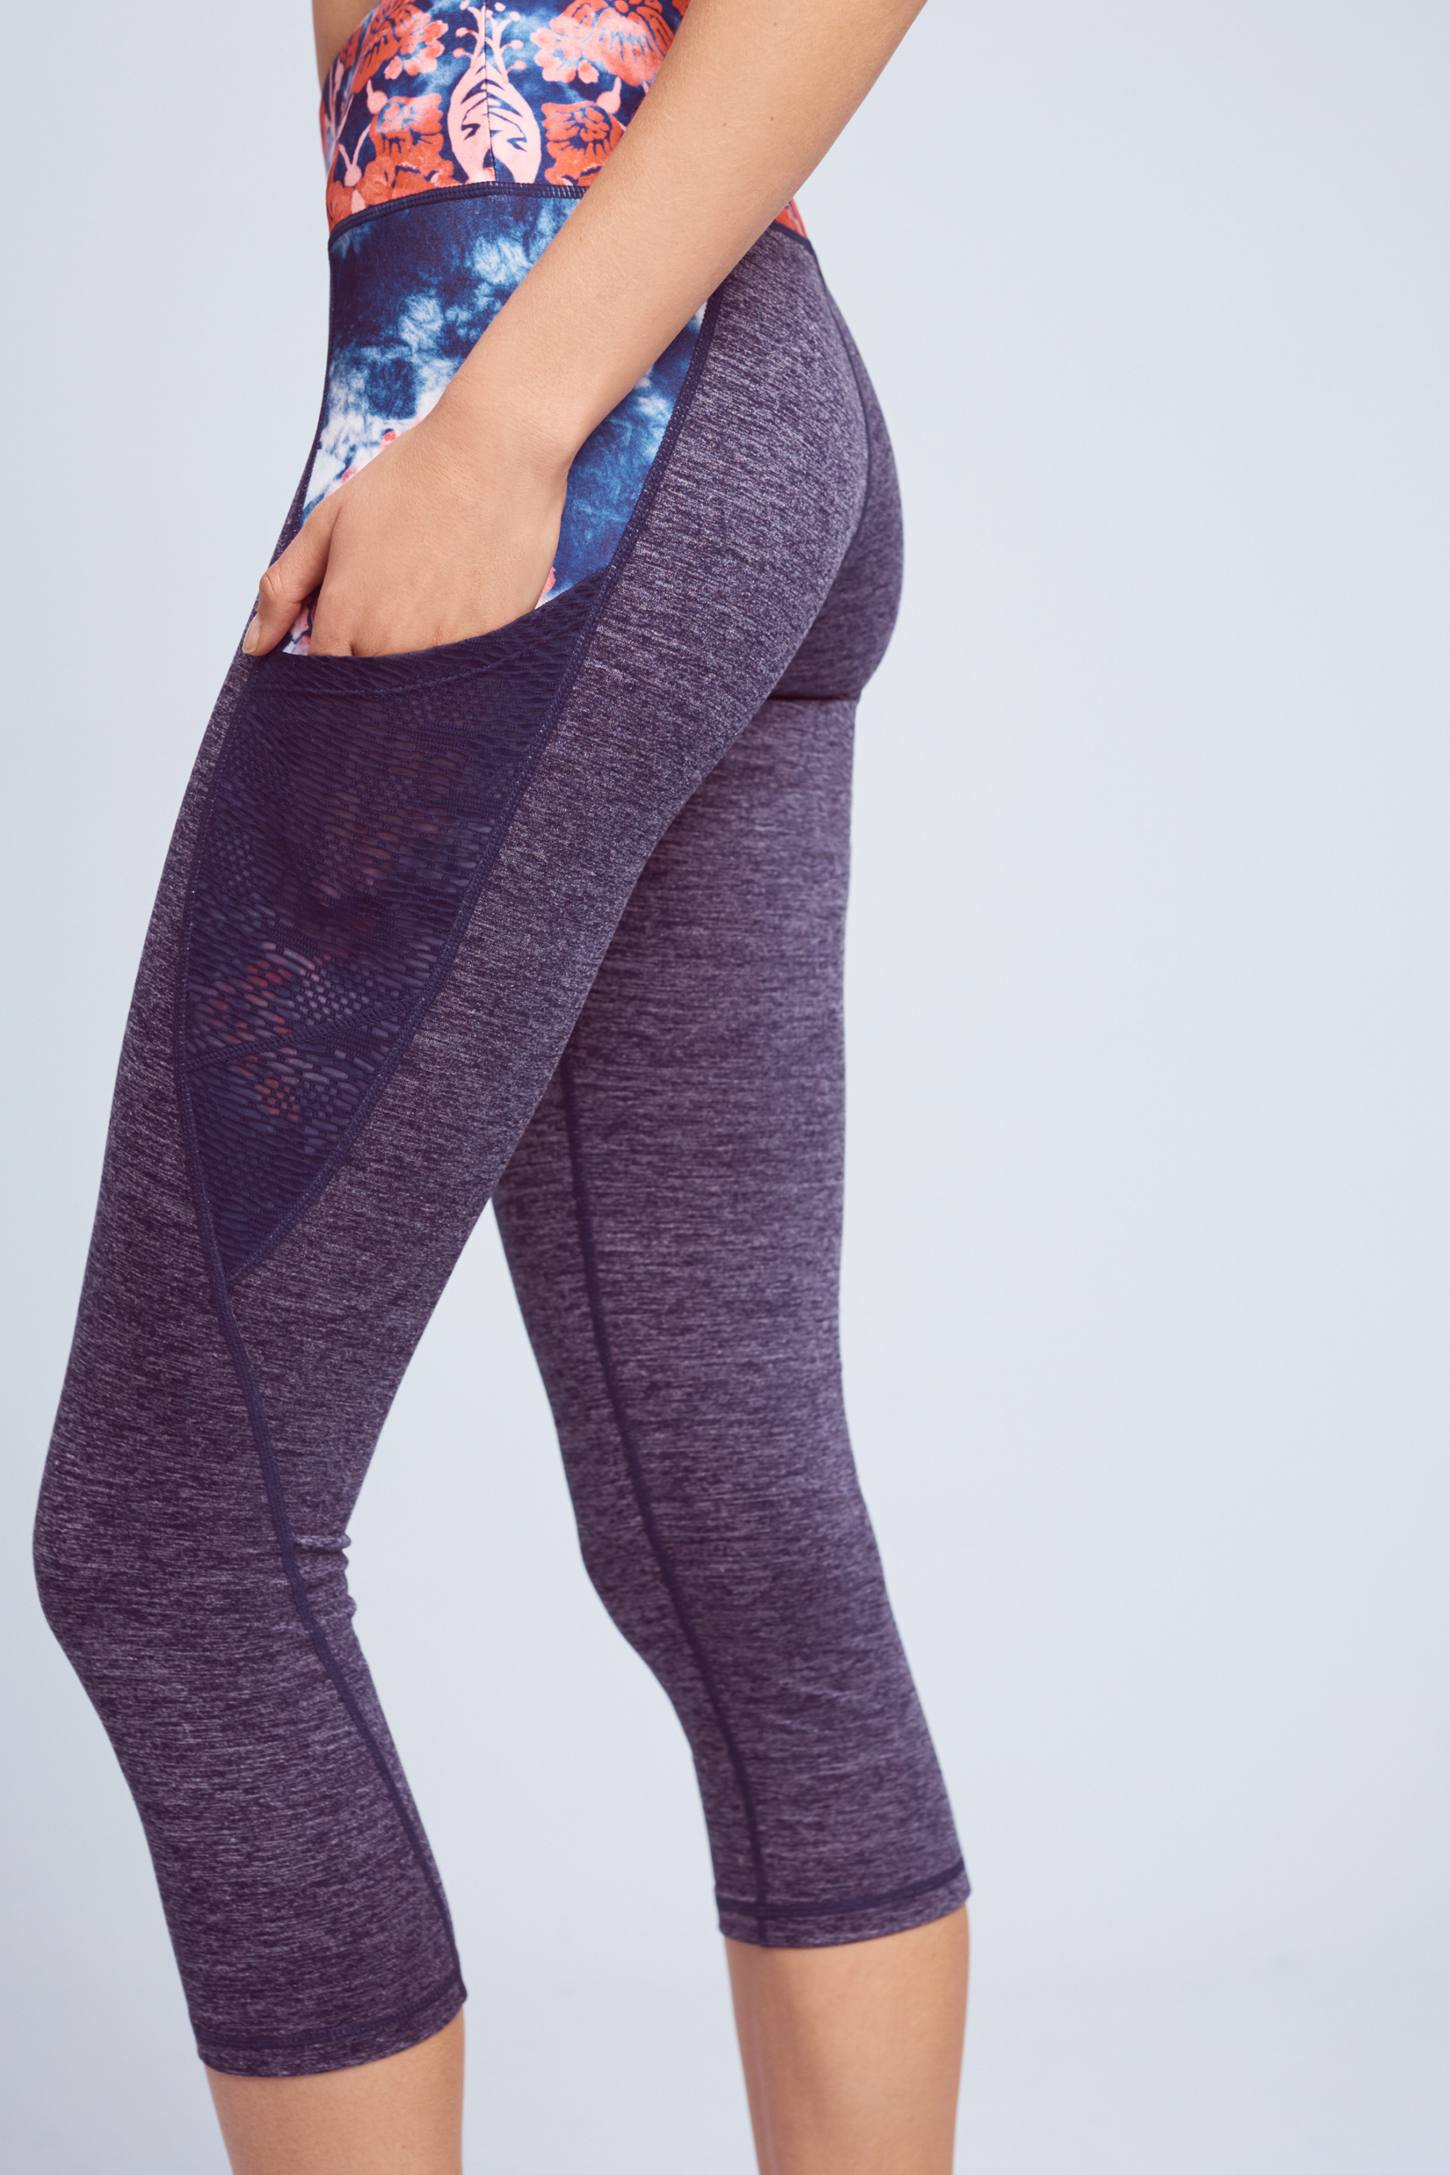 Slide View: 3: Washed Flora Capri Leggings